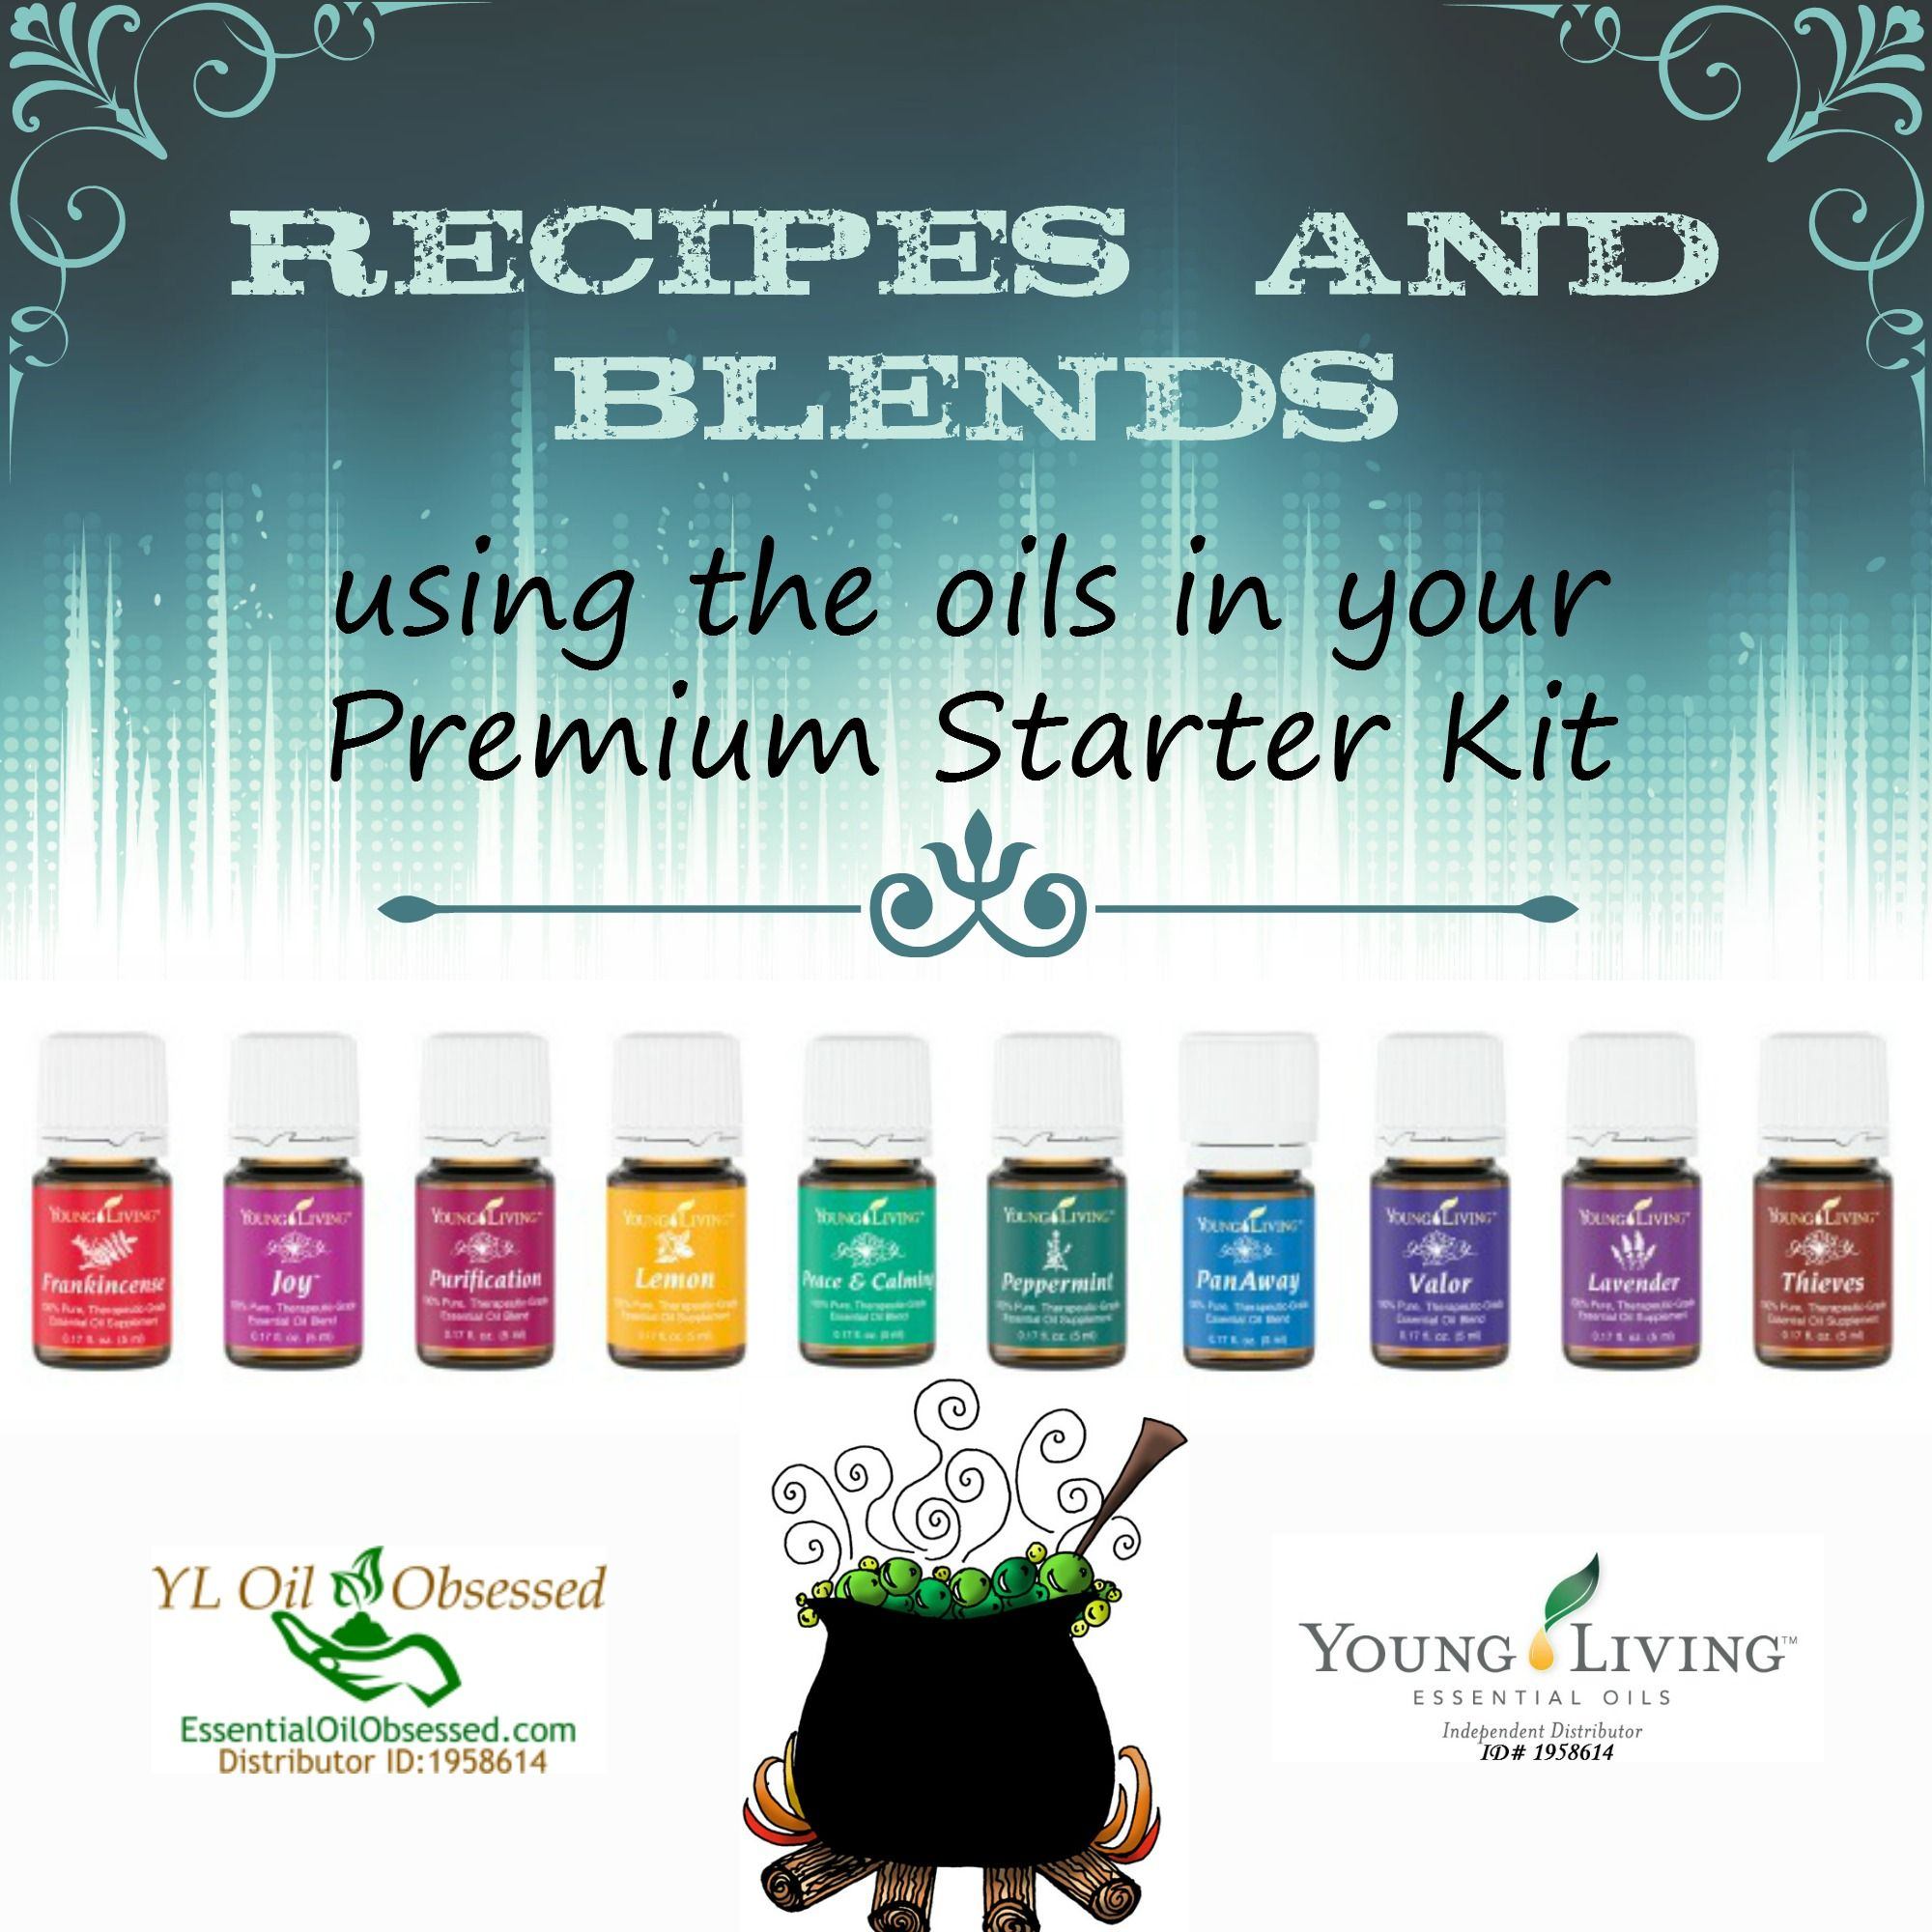 UPDATE: As of November 17, 2014 Young Living's Valor and Peace & Calming will be replaced with Stress Away and Melaleuca Alternifolia in the Everyday Oils Collection. Additionally, since Stress...